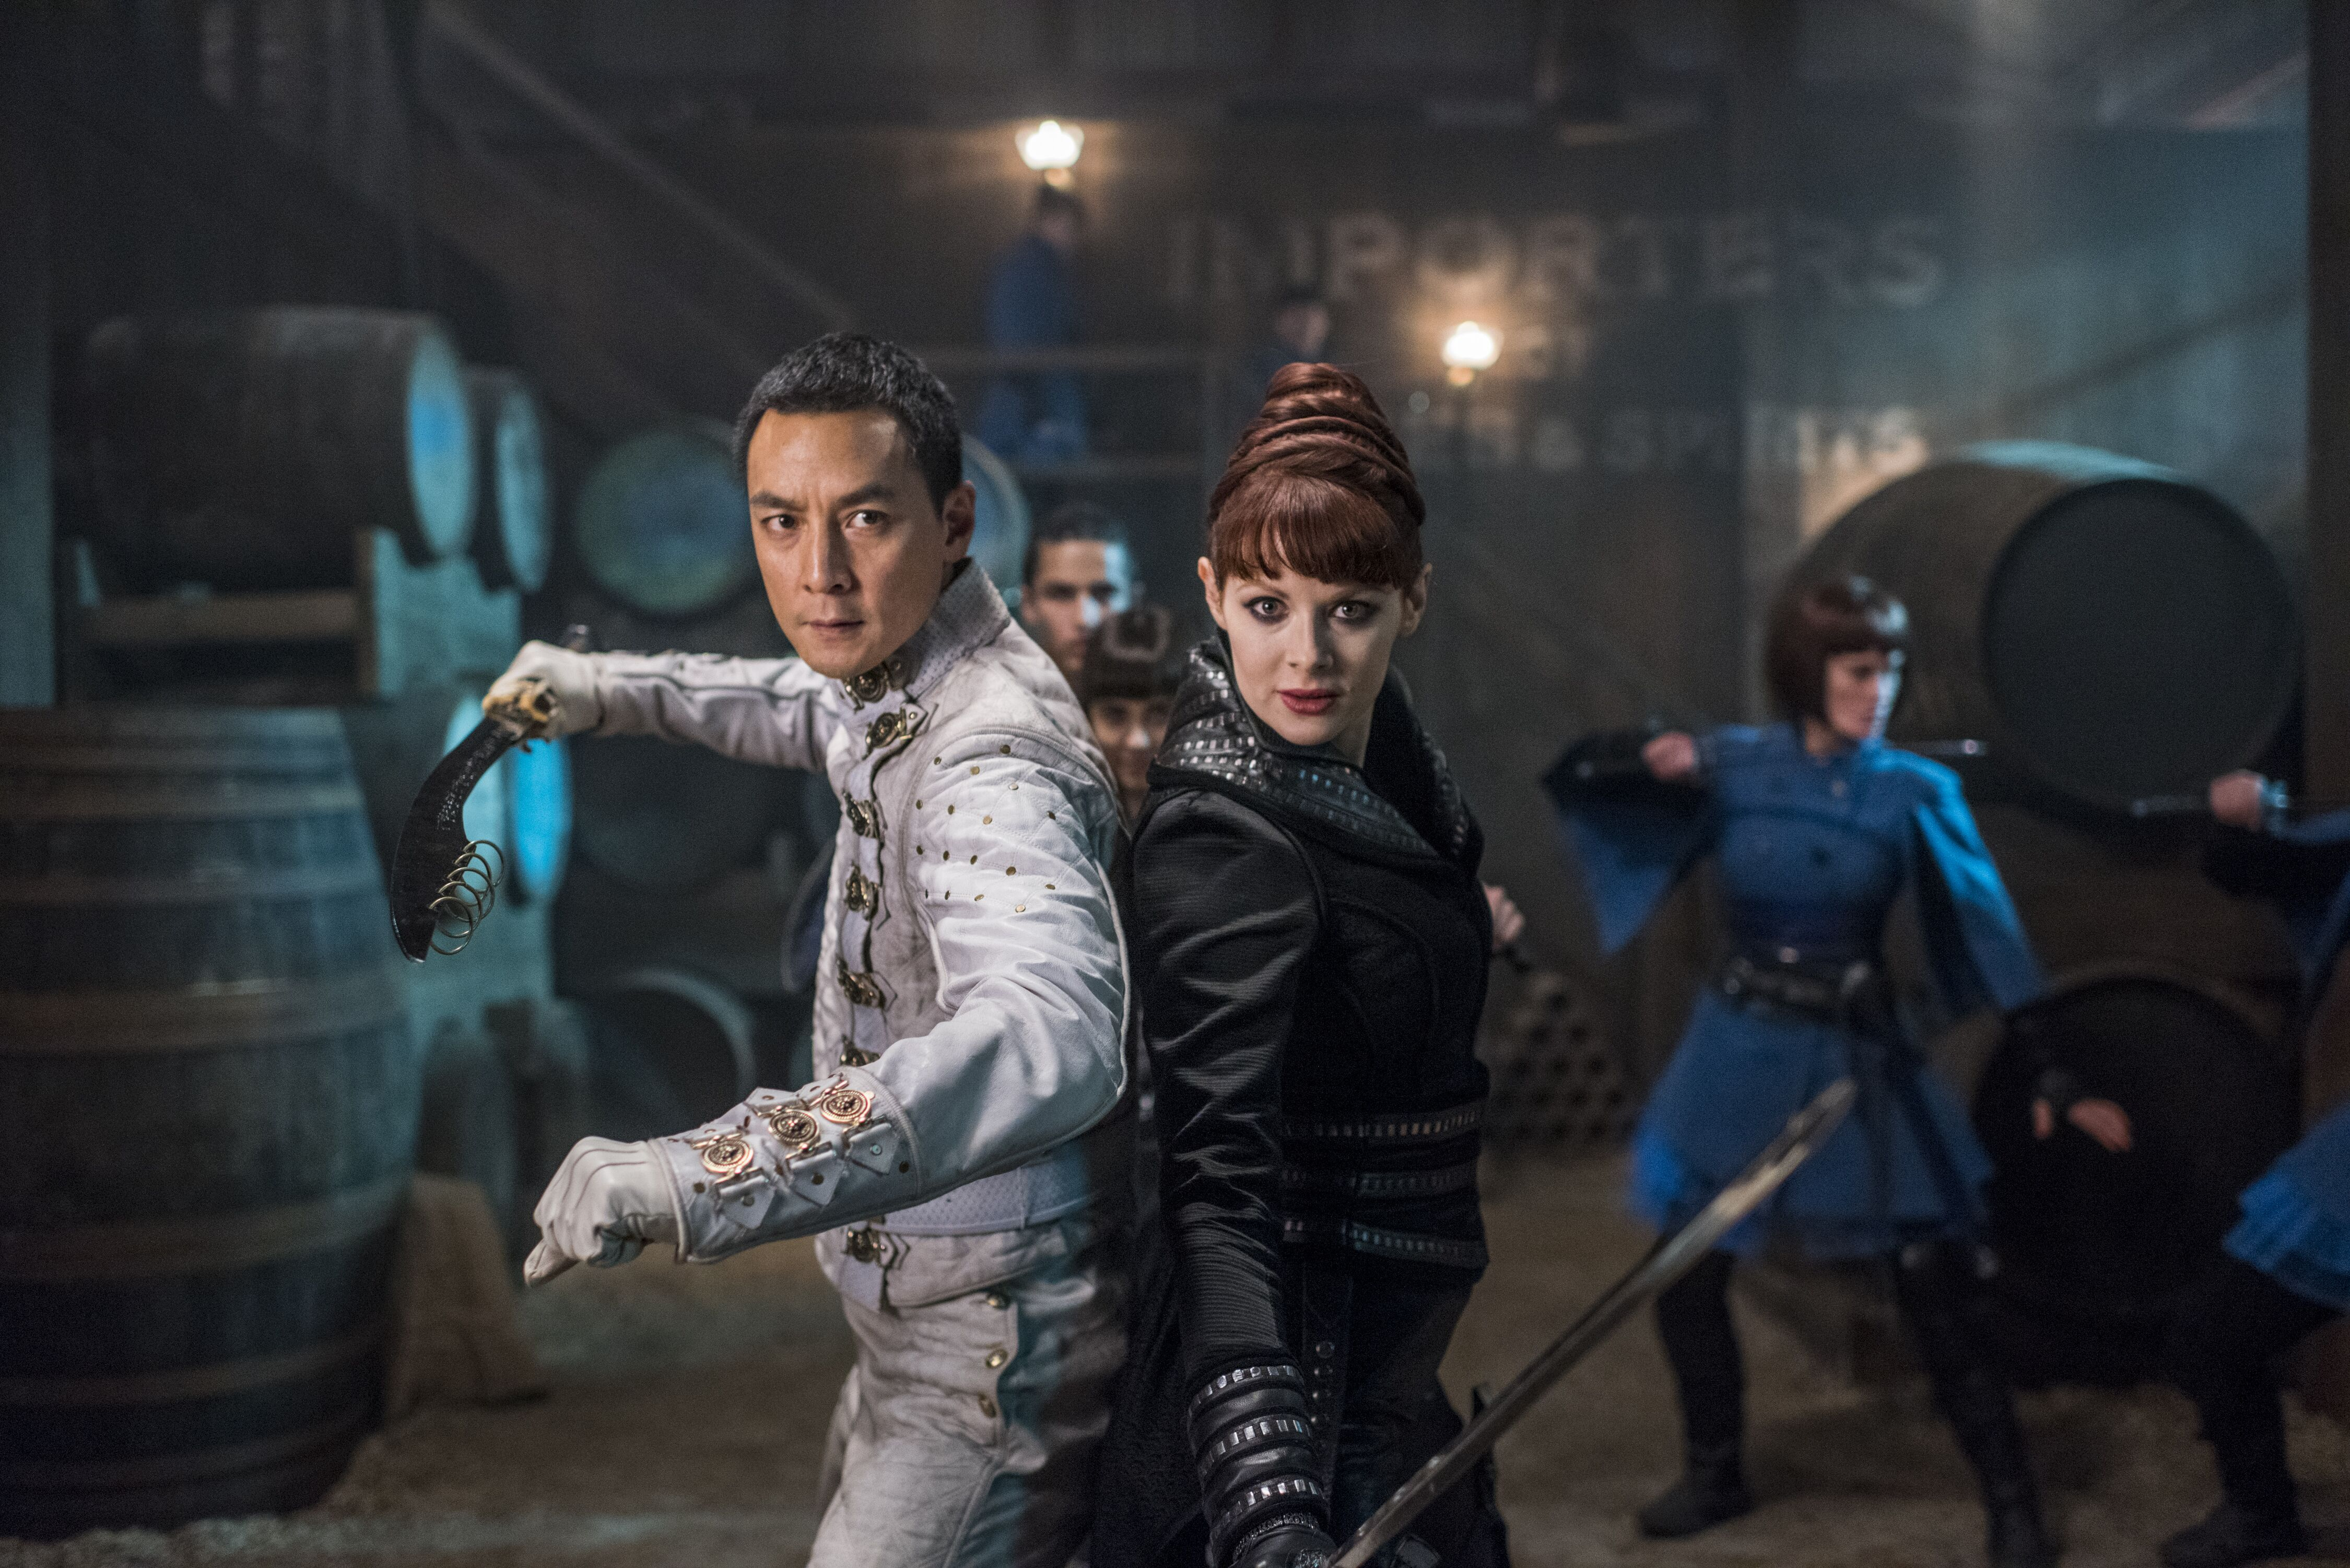 into the badlands season 3 episode 1 torrent download